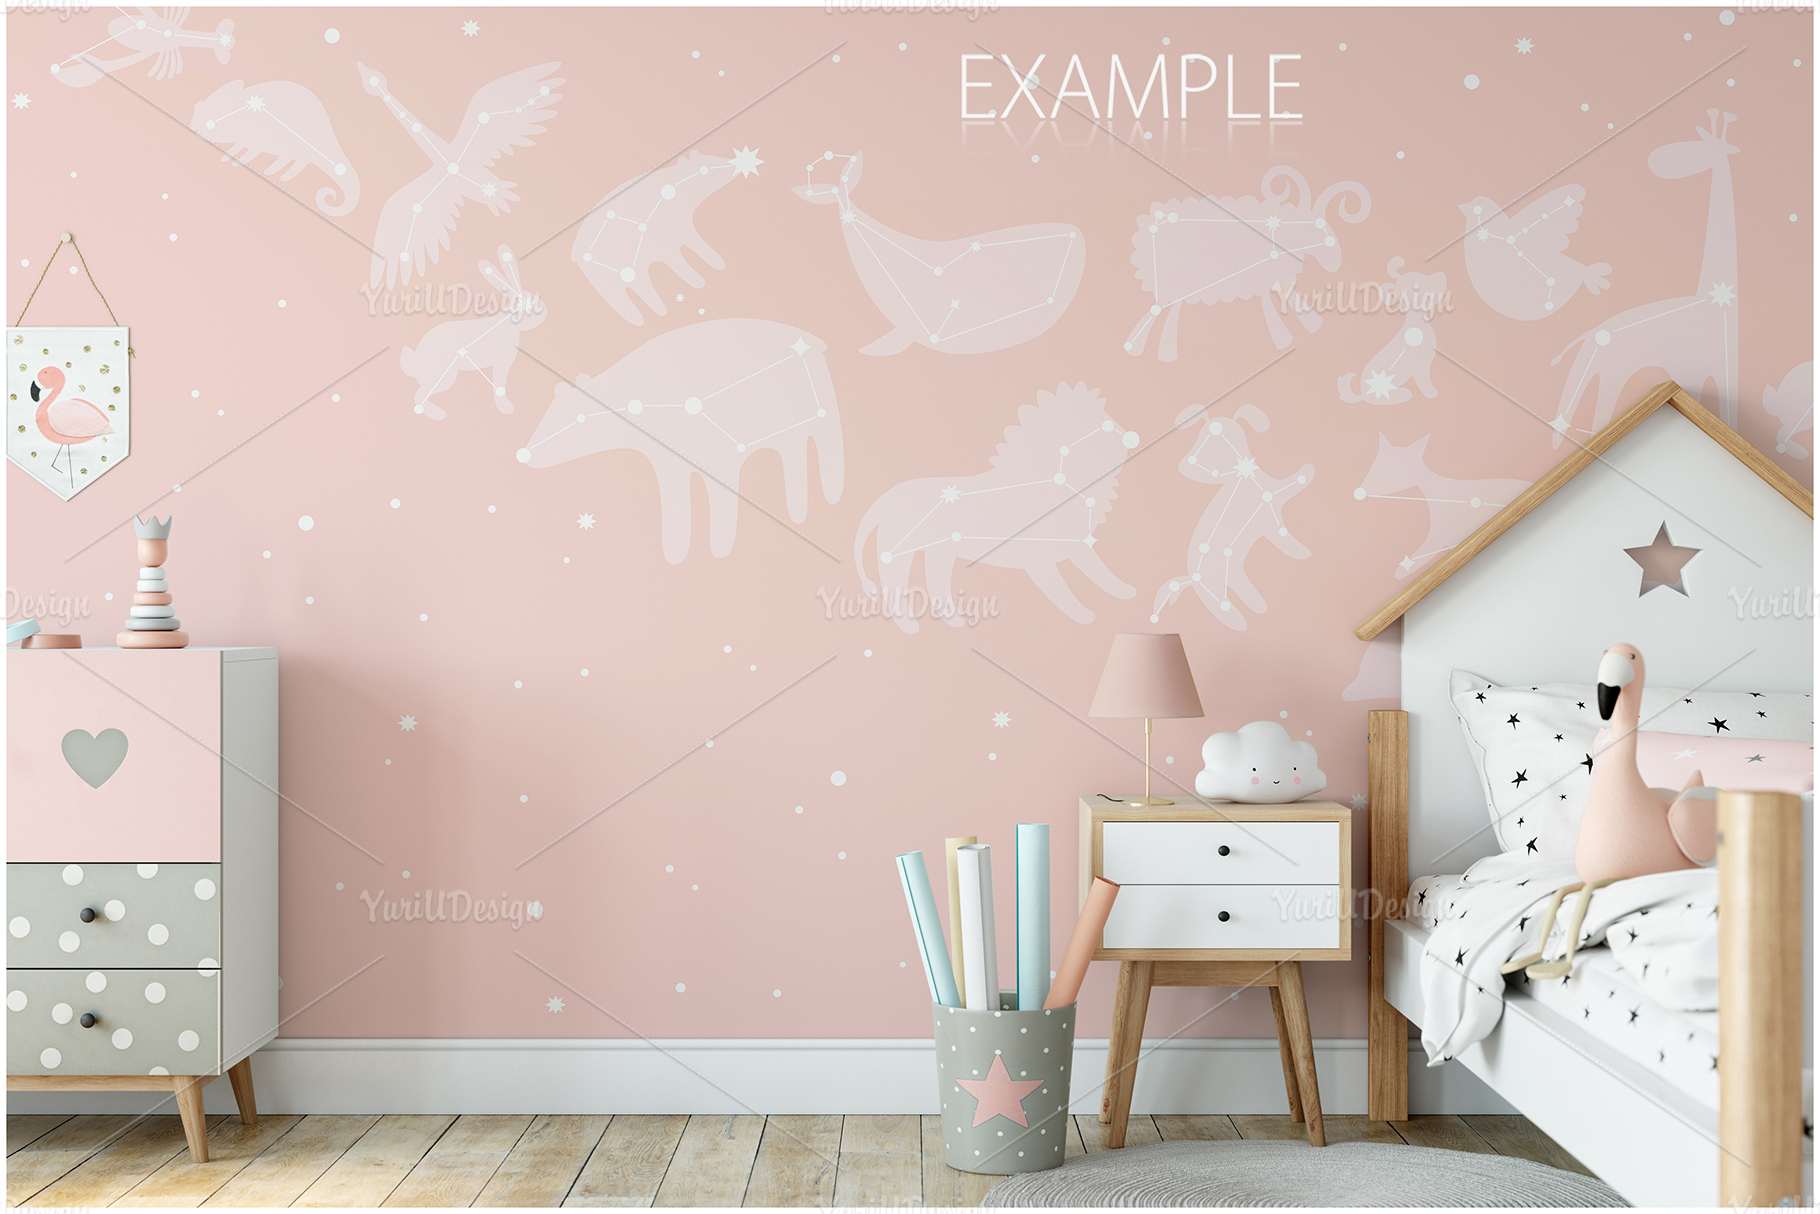 Kids Frames & Wall Mockup Bundle - 5 example image 18